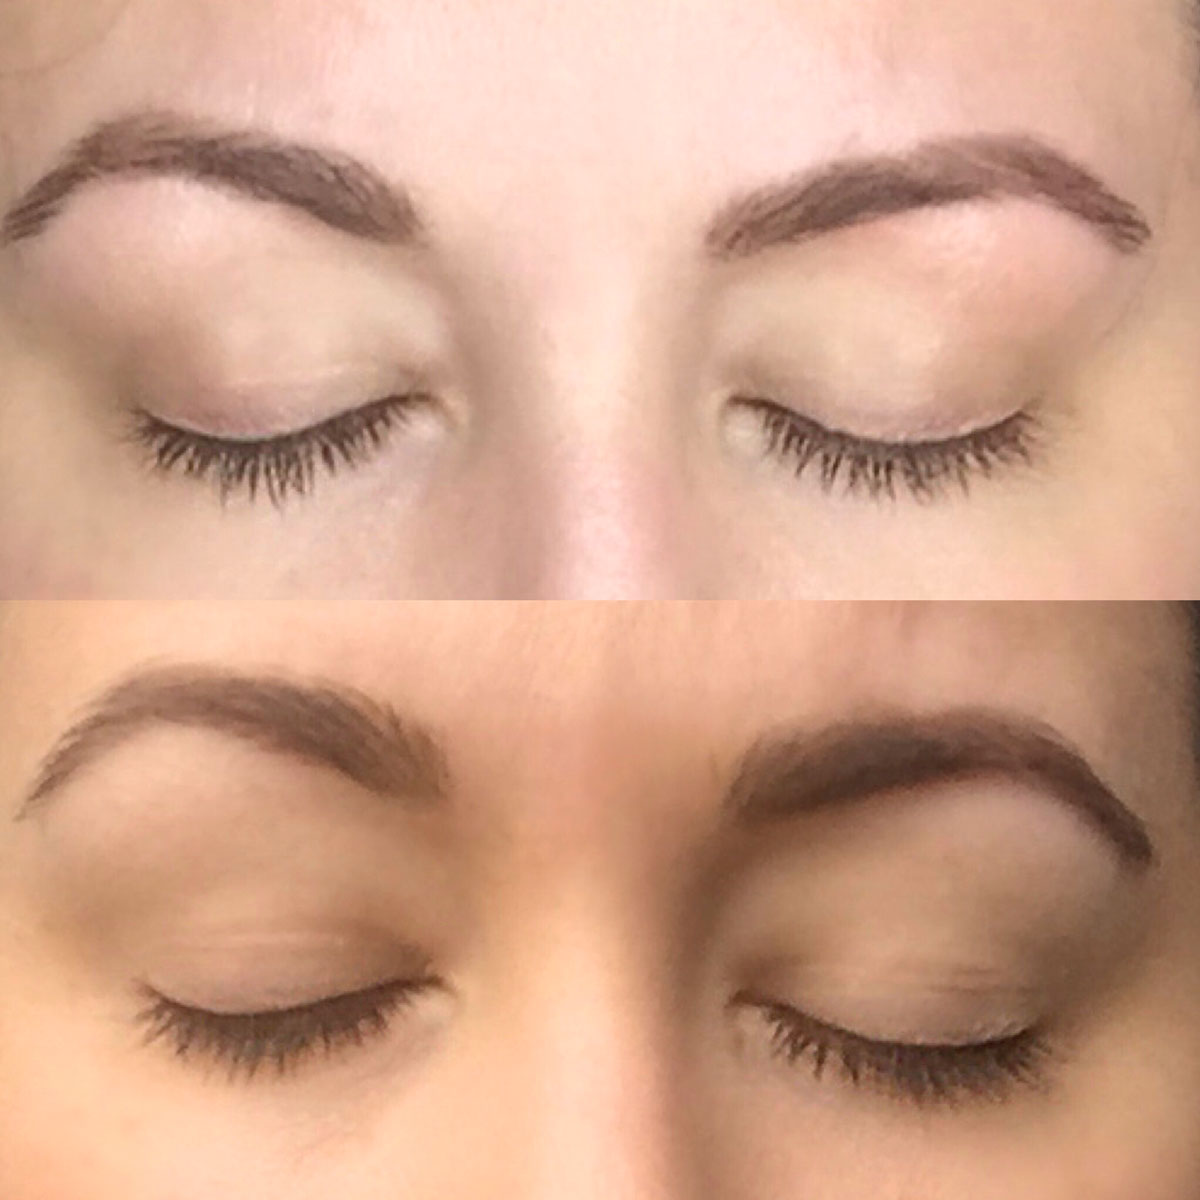 ae13aeff23e If you wear lash extensions, you need to invest in a great lash growth serum